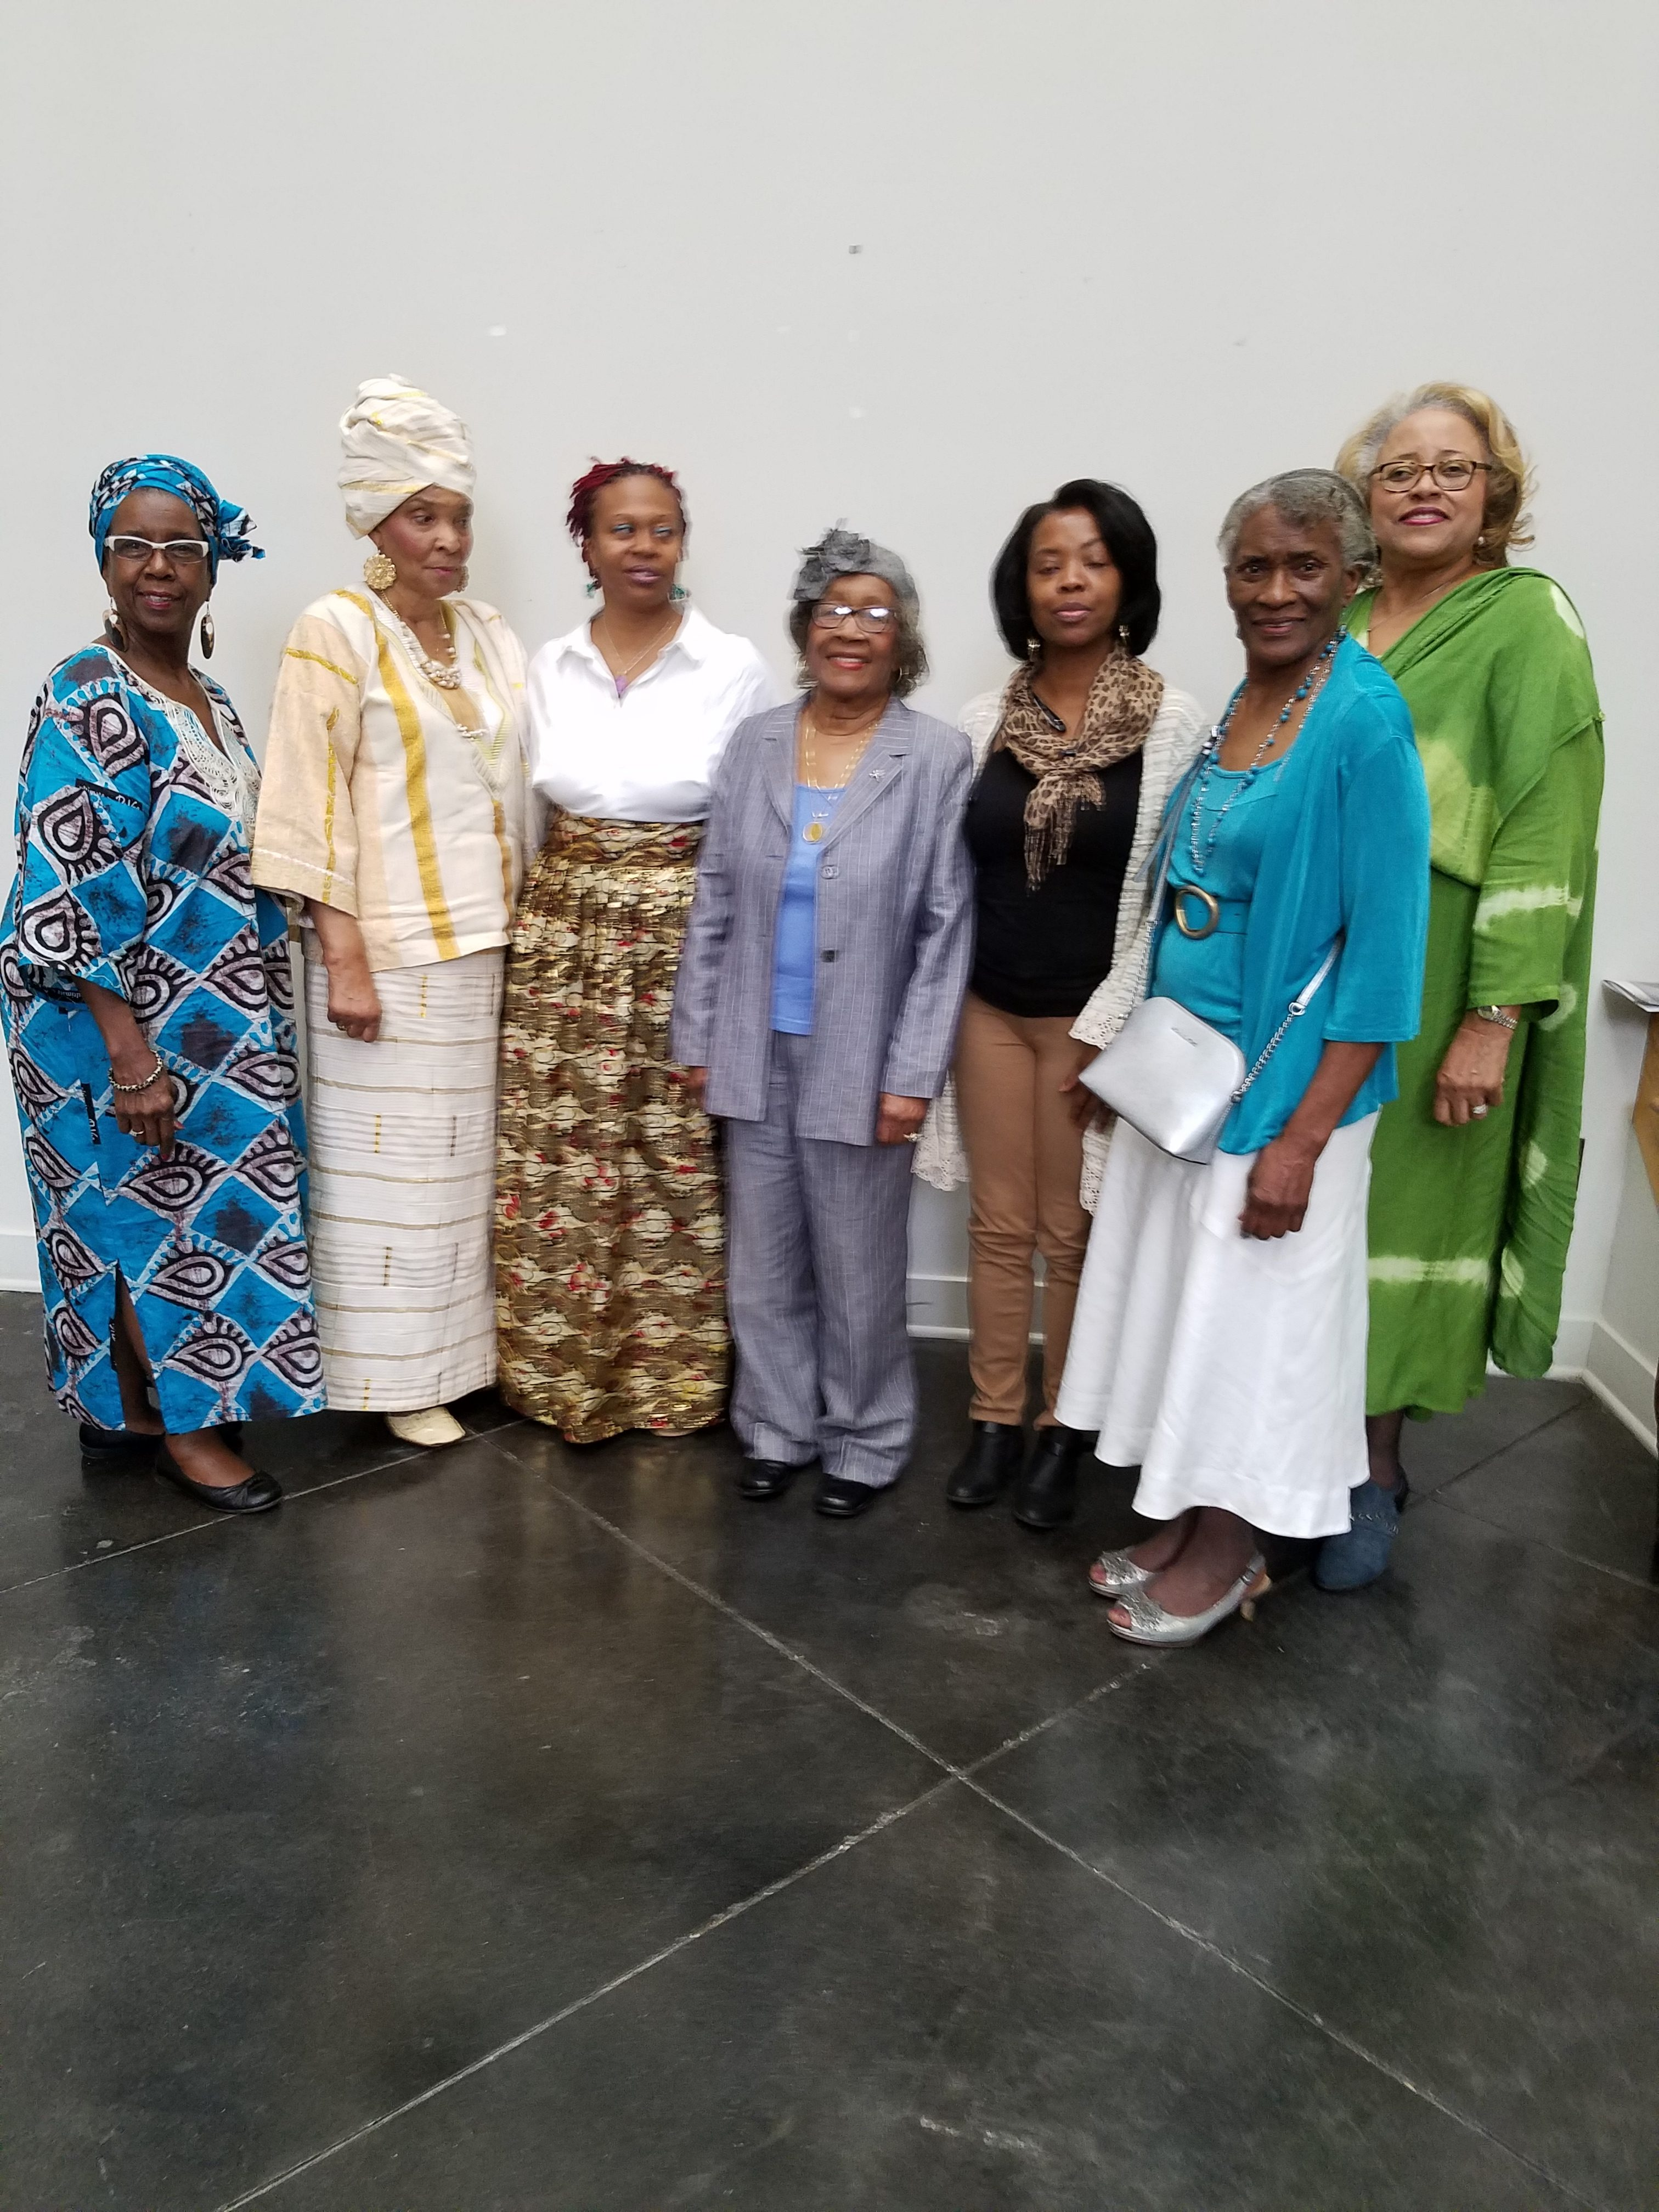 Left to Right – Ada Robinson, chair membership and publicity; Dorothy Stewart, presider/founder, Women for Progress; Sandkofa Ra, reproductive health educator, NYC; Ruth Weir, granddaughter of midwife Virginia Scott Ford; Connie Little, Hinds County election commissioner - District 5; Alferdteen Harrison, president, Scott Ford House, Inc., and Juanita Brown, publicity